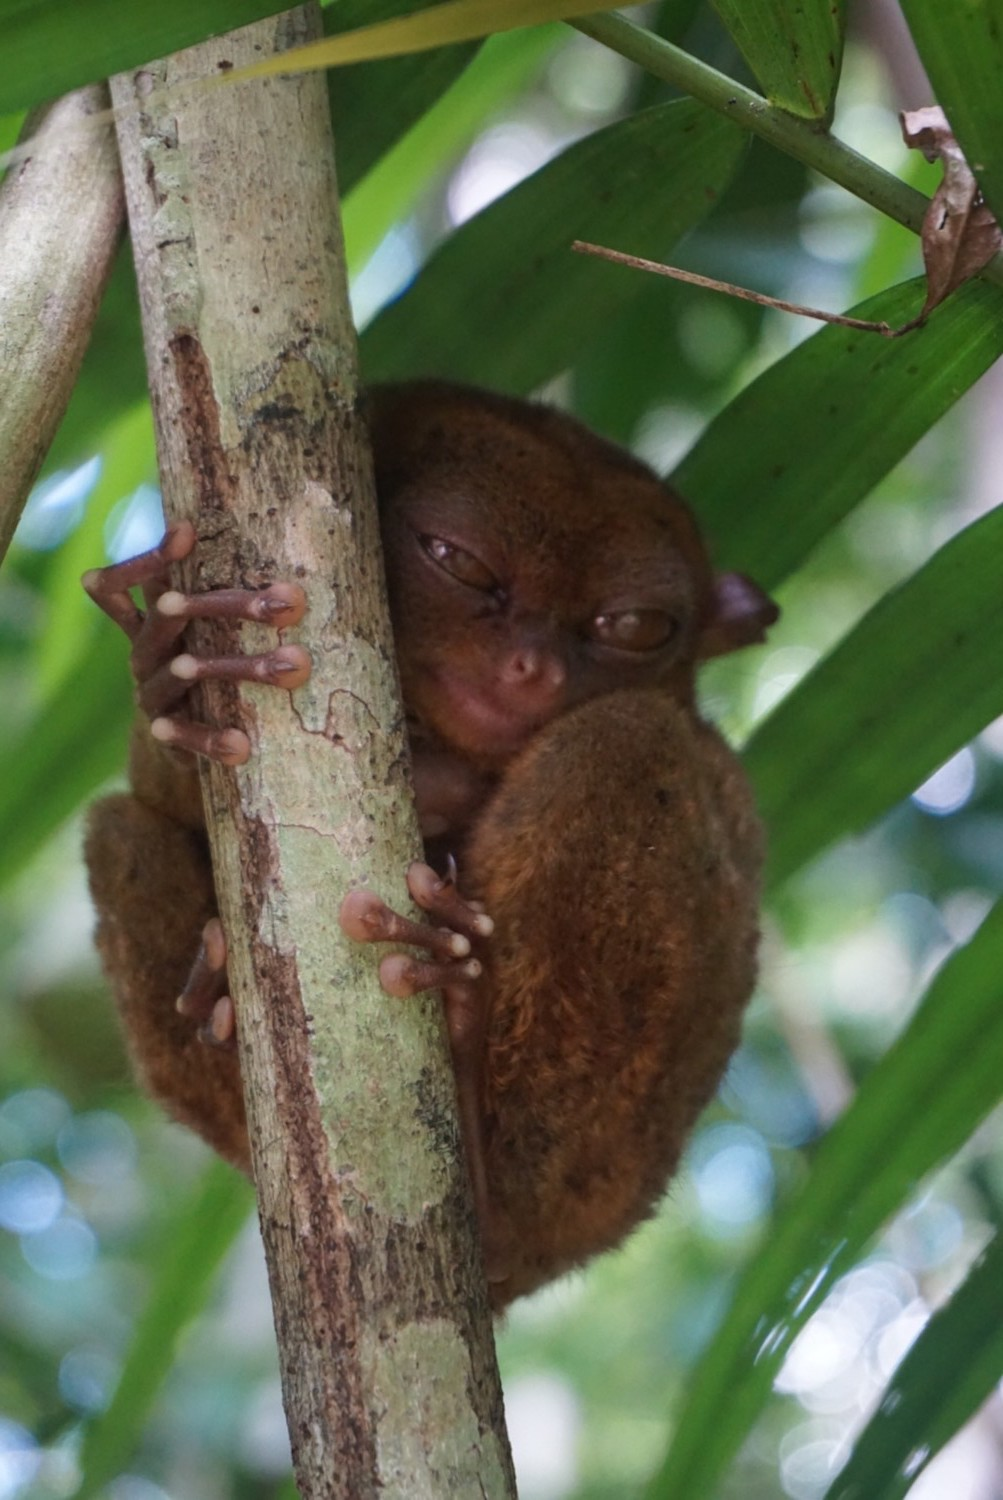 The worlds smallest primate at Tarsier clings onto a tree in Bohol, Philippines. boldlygotravel.com